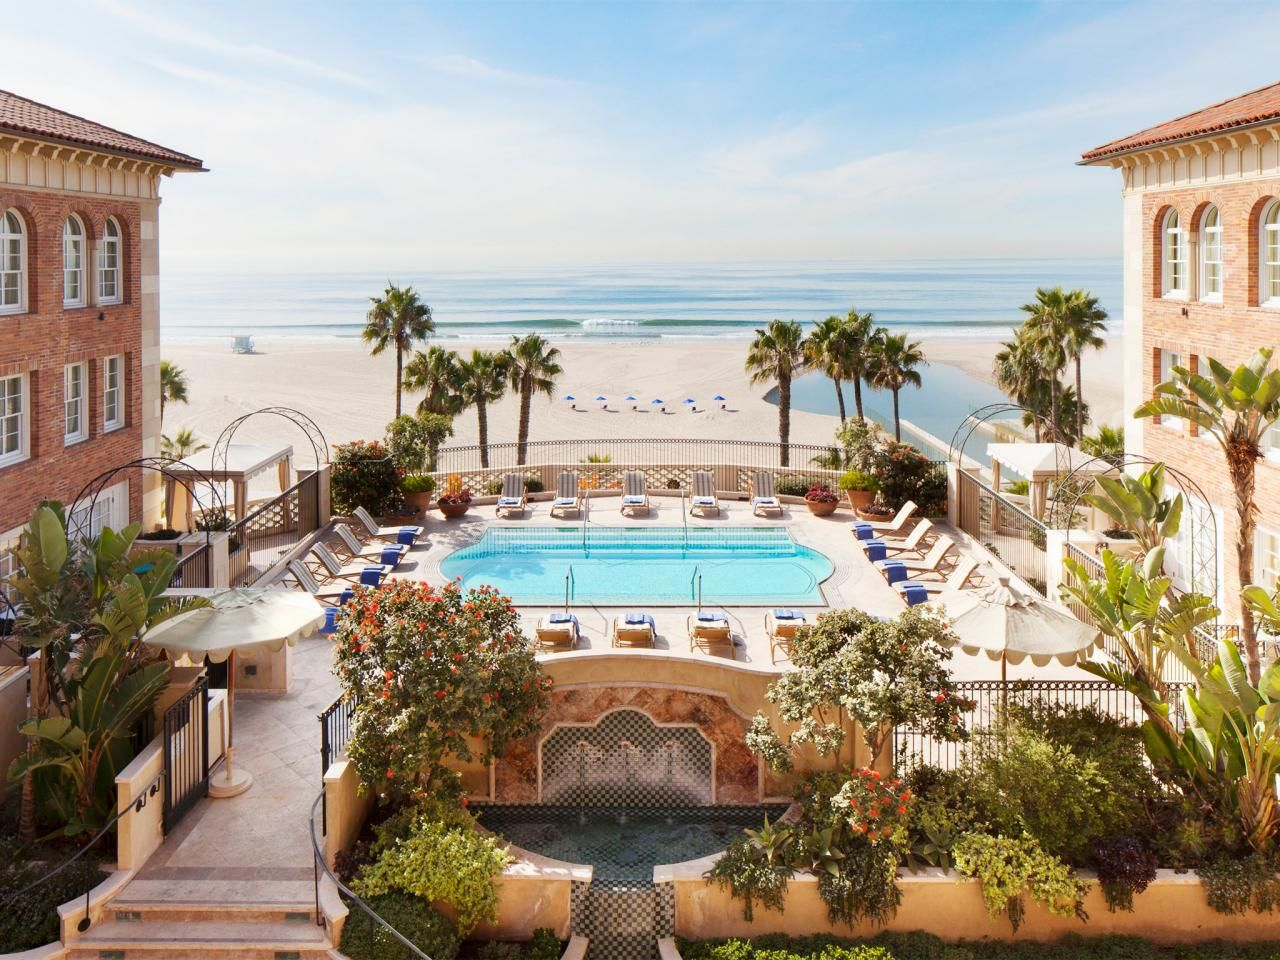 Hotel Casa Del Mar Top 10 Family Spring Break Hotels Santa Monica Hotels Los Angeles Hotels Beachfront Hotels